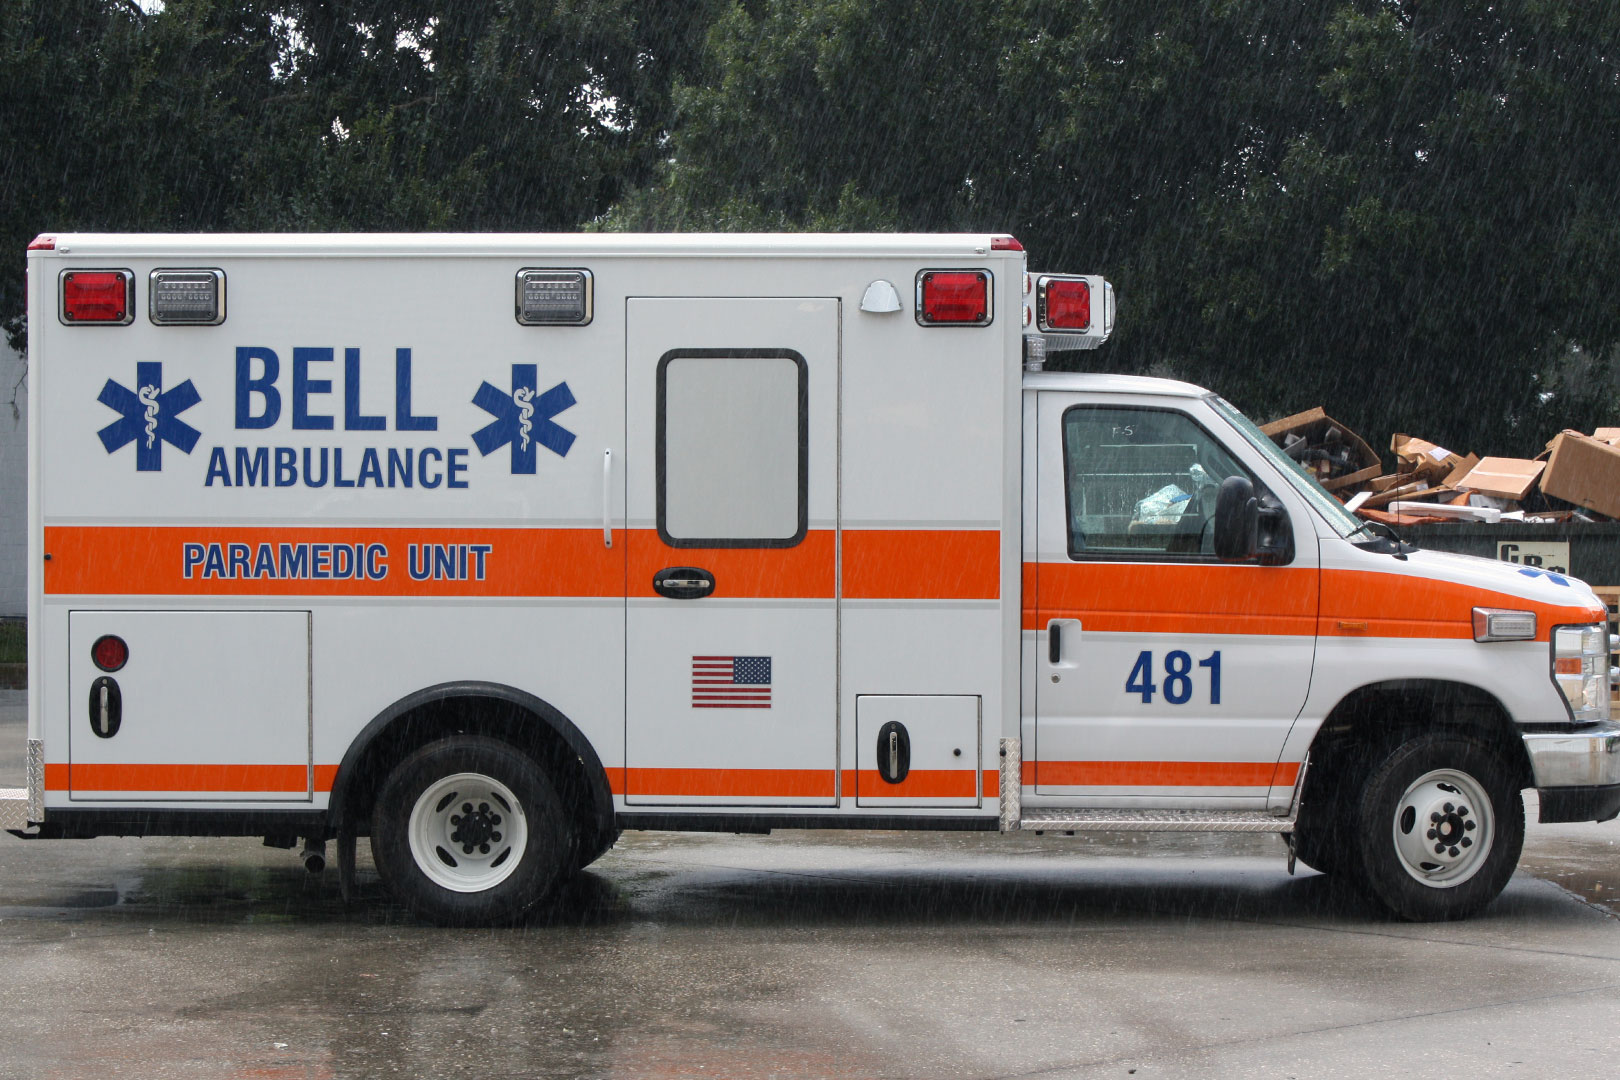 Bell Ambulance By 24Seven Graphic Design & Supply, Inc.